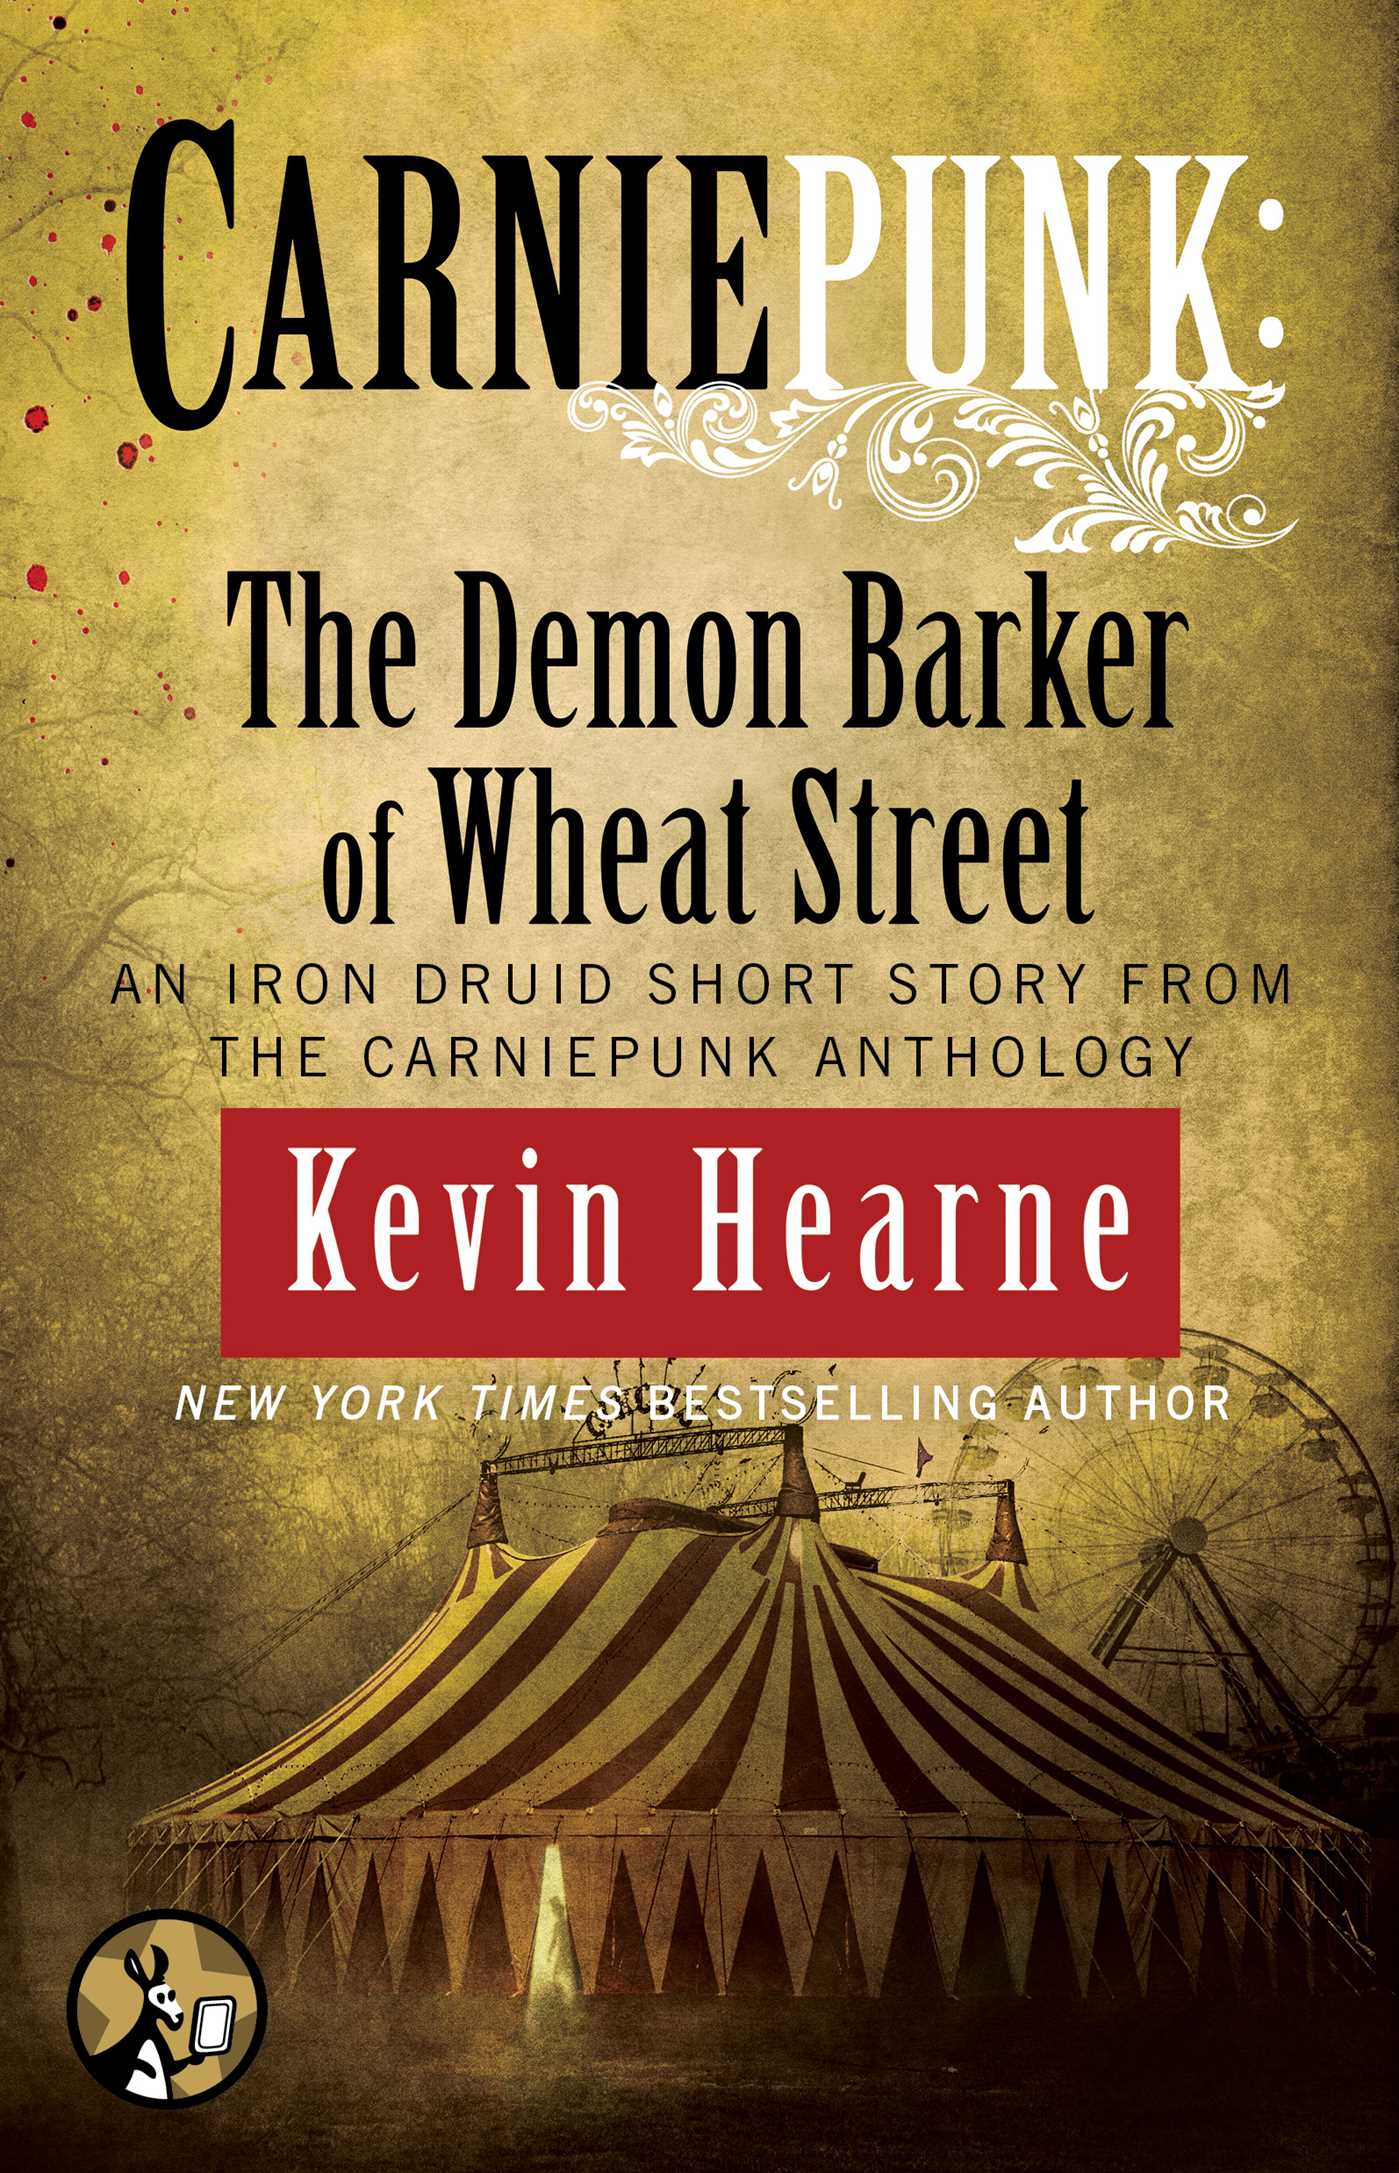 Carniepunk-the-demon-barker-of-wheat-street-9781476793504_hr